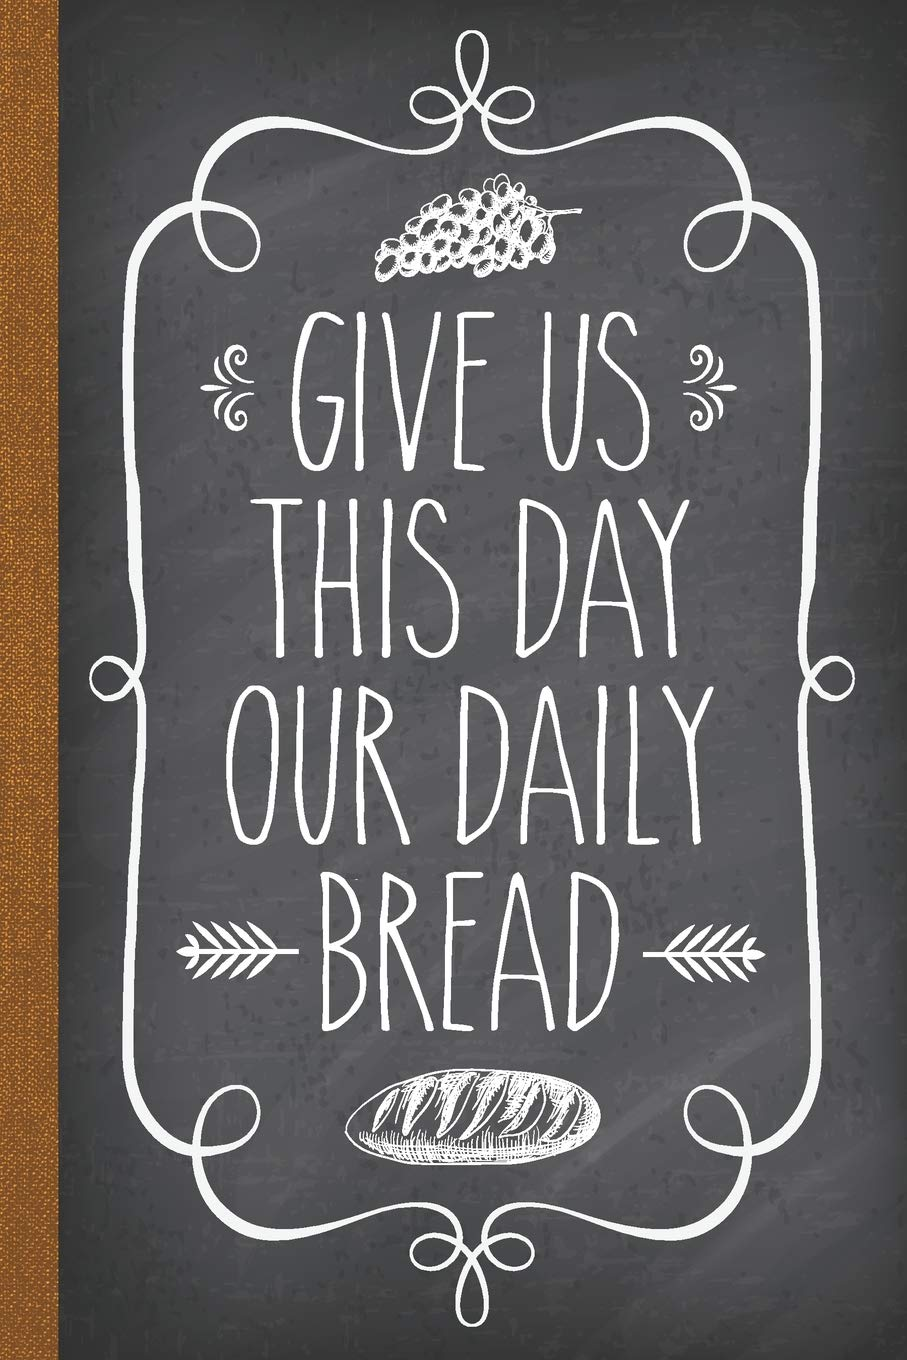 Give Us This Day Our Daily Bread: DIY Cookbook Blank Recipe